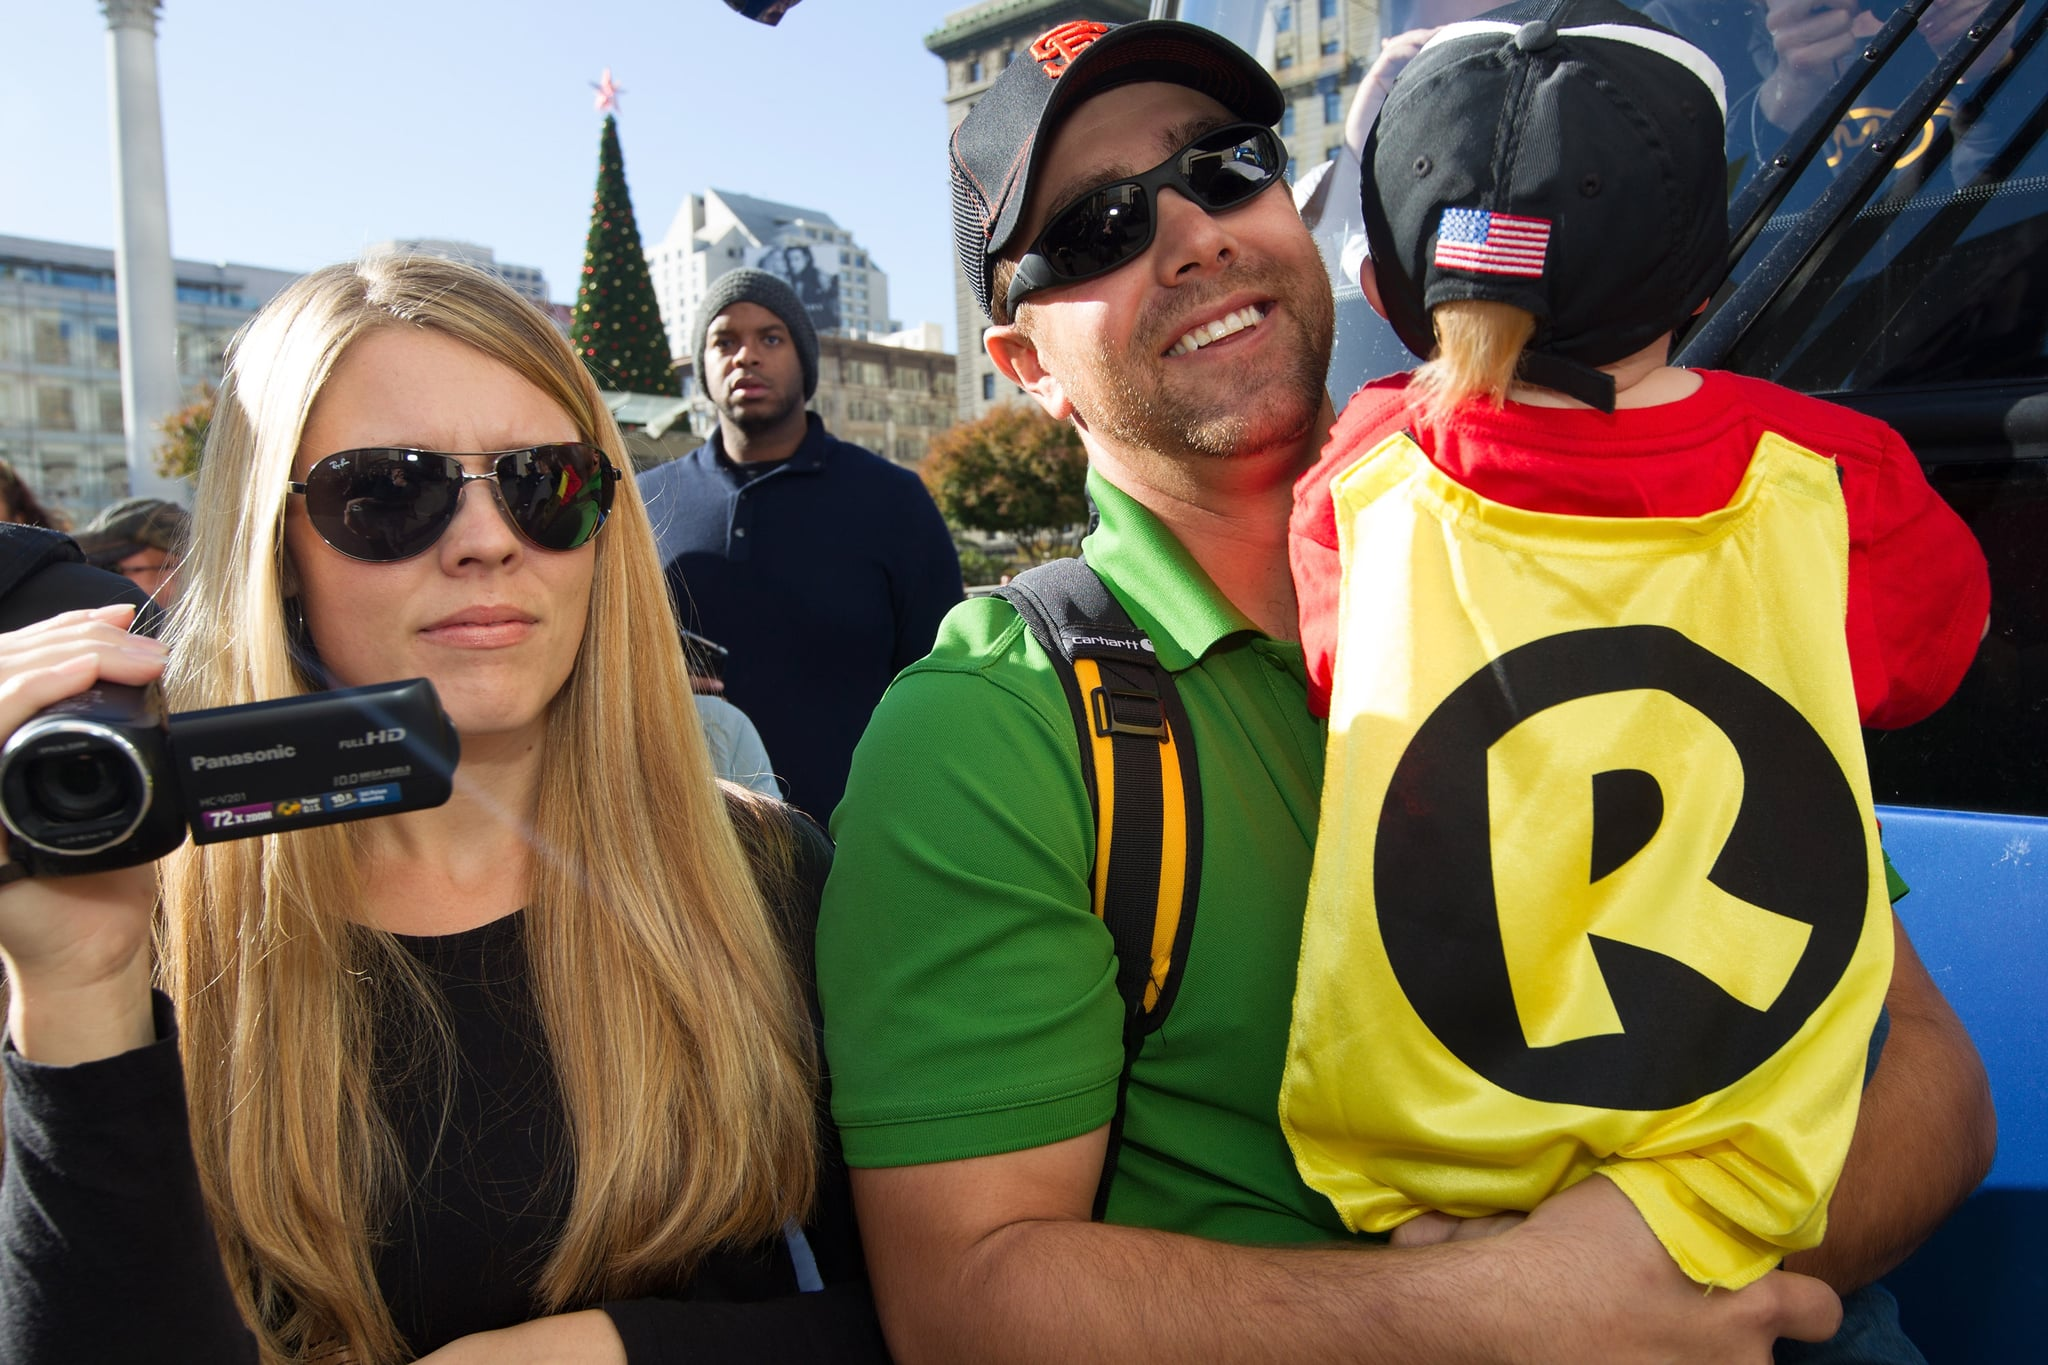 Miles's parents, Natalie and Nick Scott, kicked off the day with their little superhero, plus his sidekick younger brother, who was dressed as Robin.